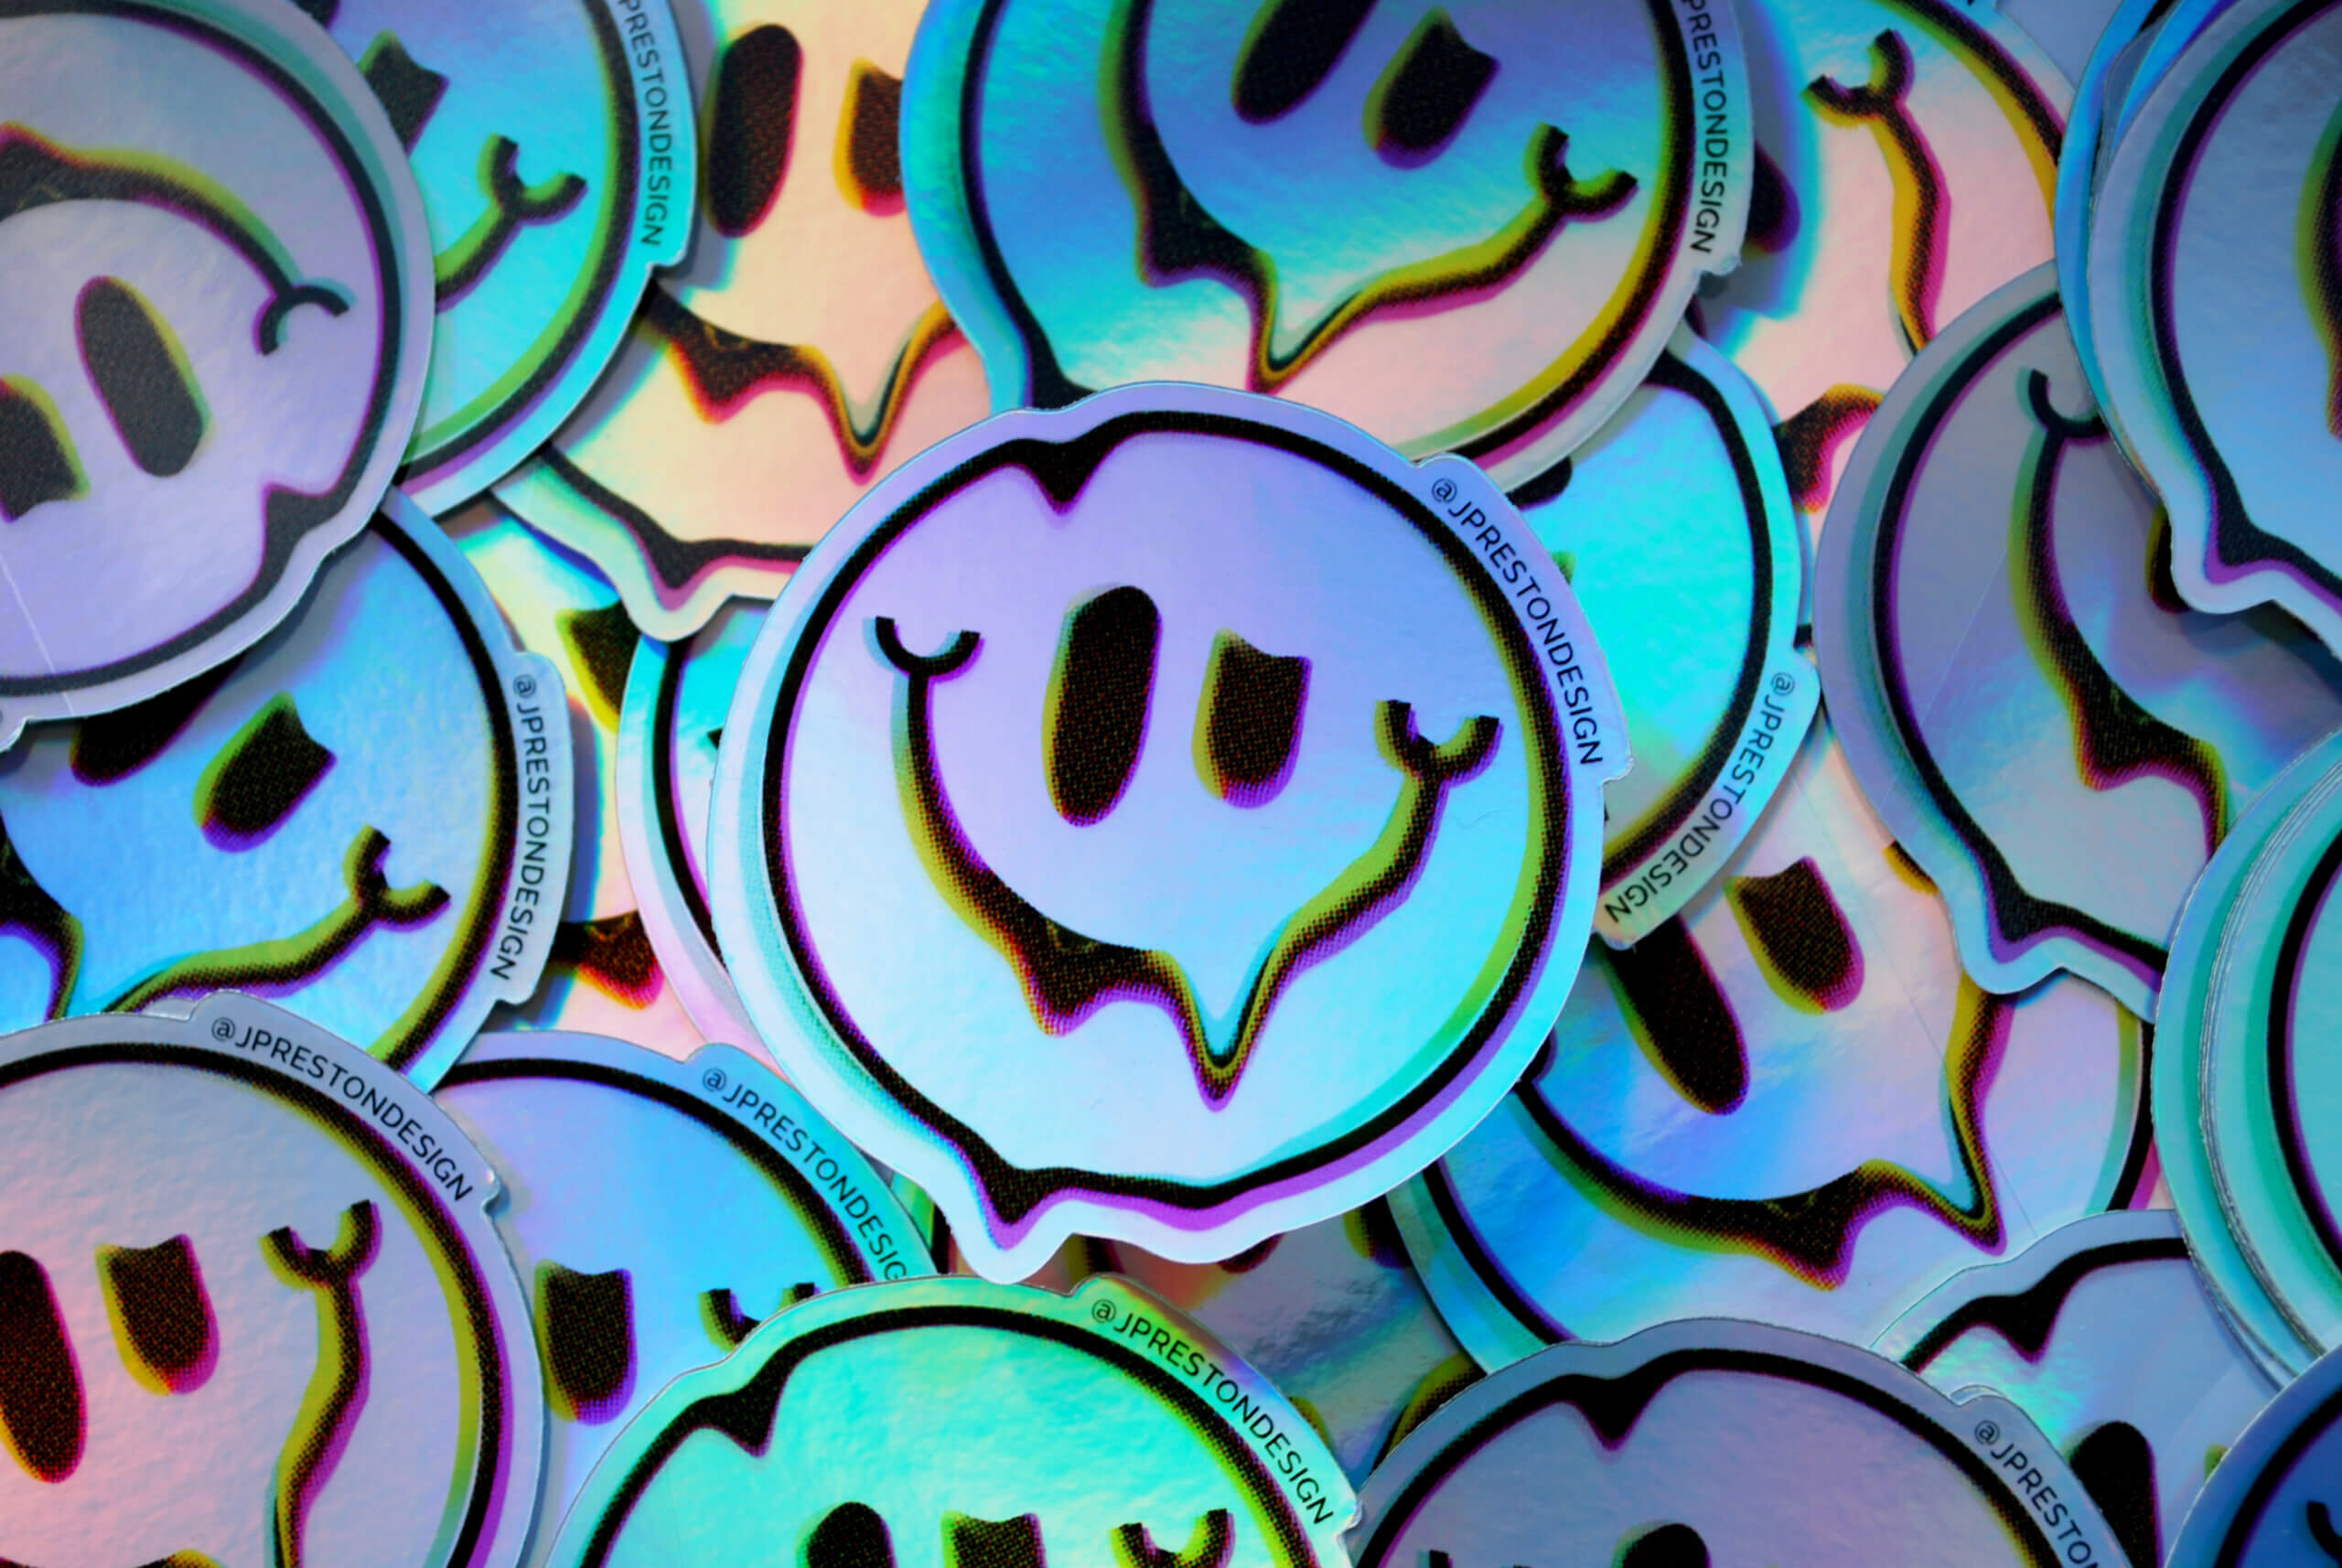 Holographic smiley Sticker